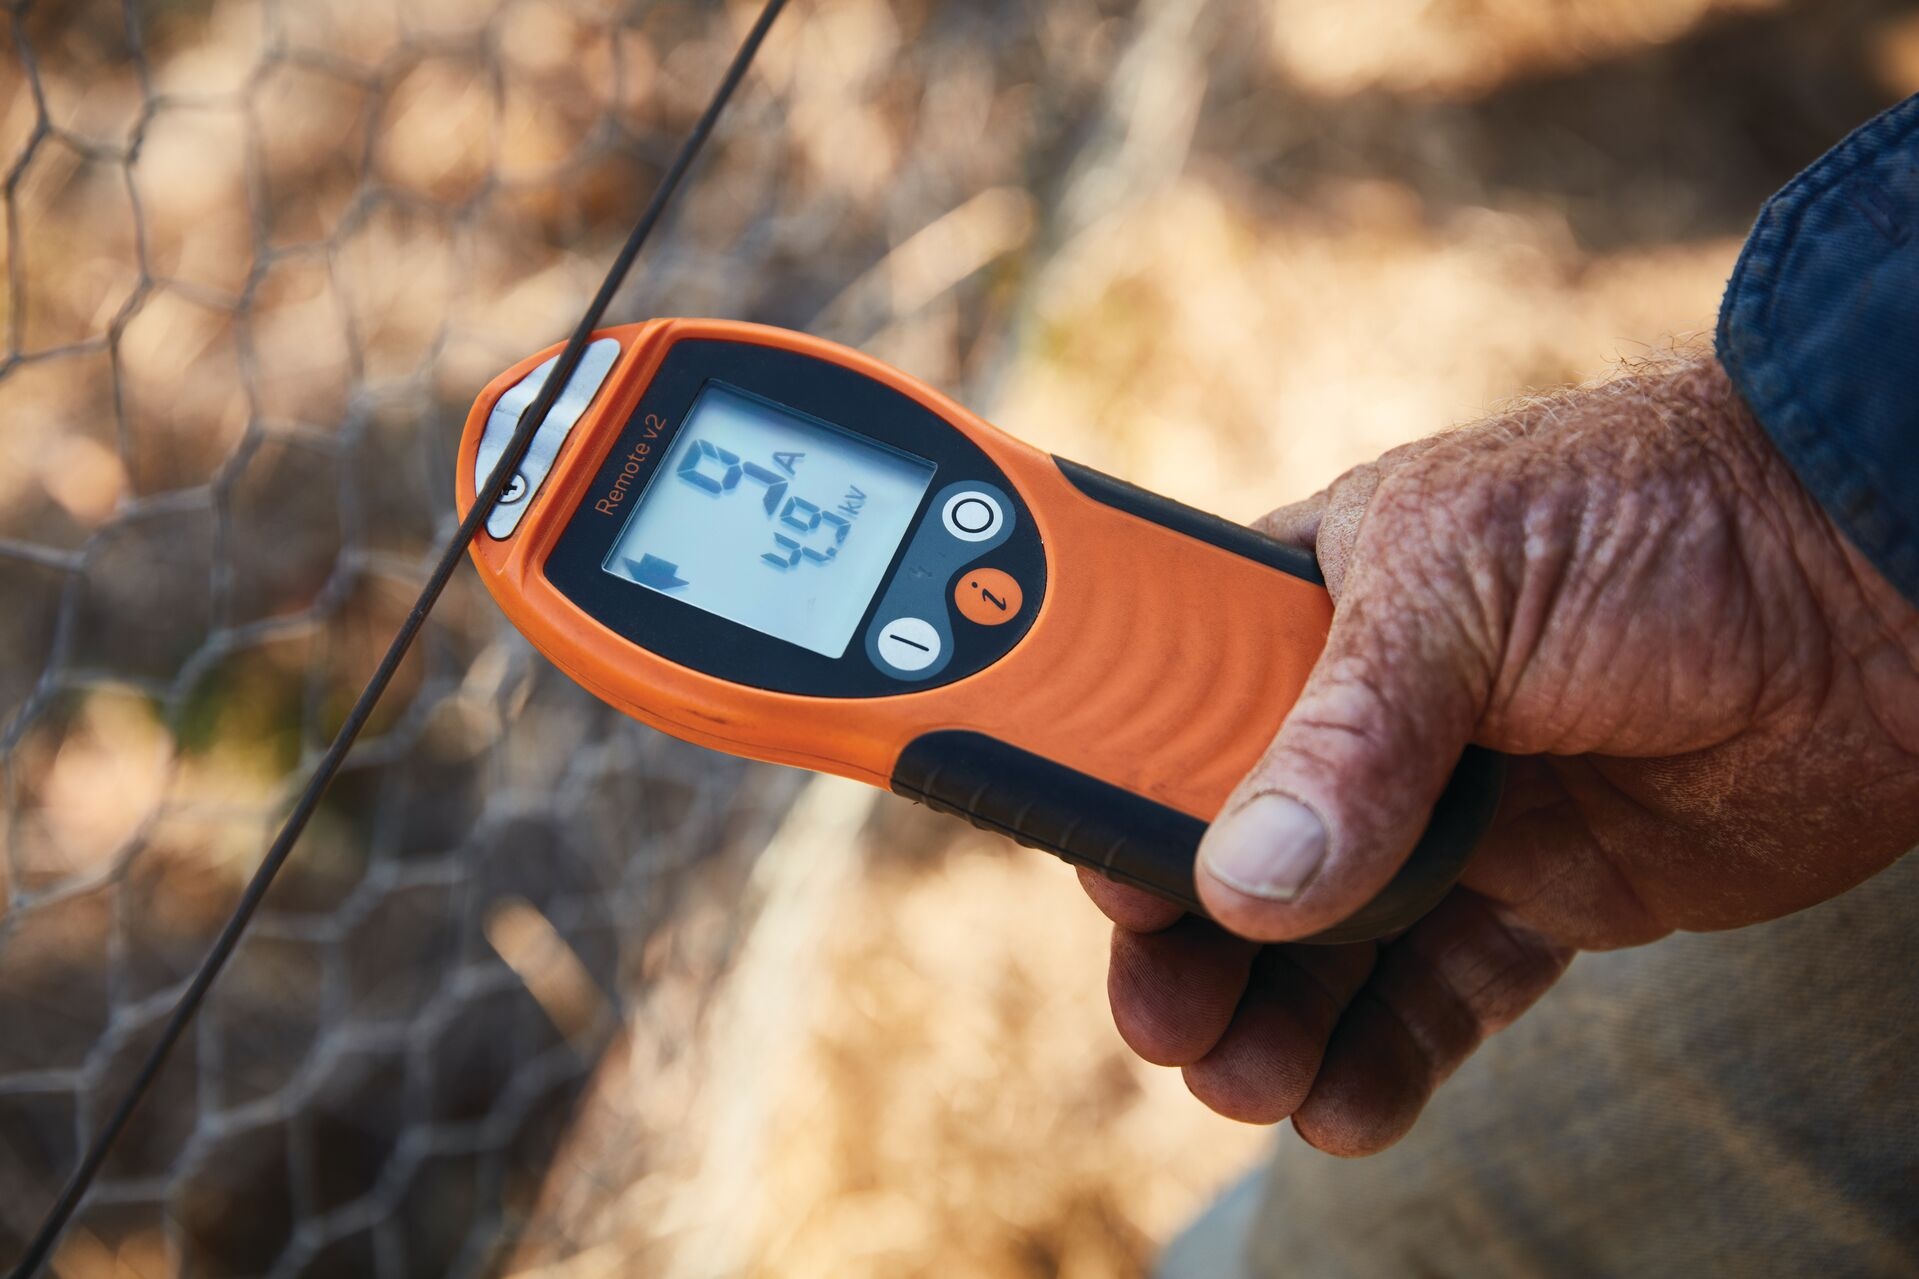 Gallagher i Series Remote Control and Fault Finder being used by farmer to test electric fence